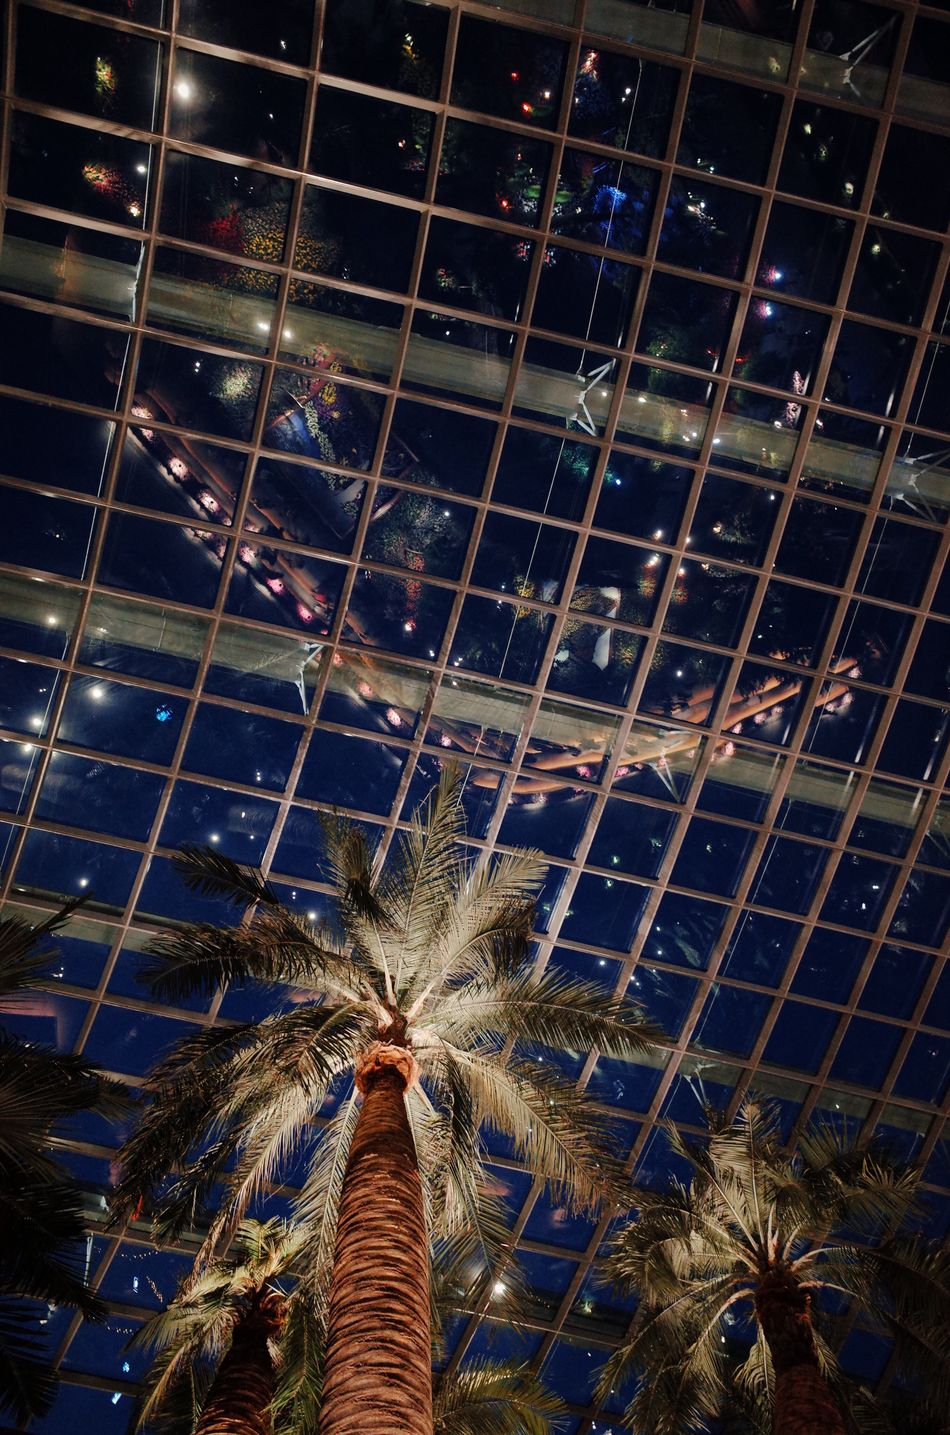 Flower Dome Low Angle View Starry Night Reflctions Coconut Palm Tree